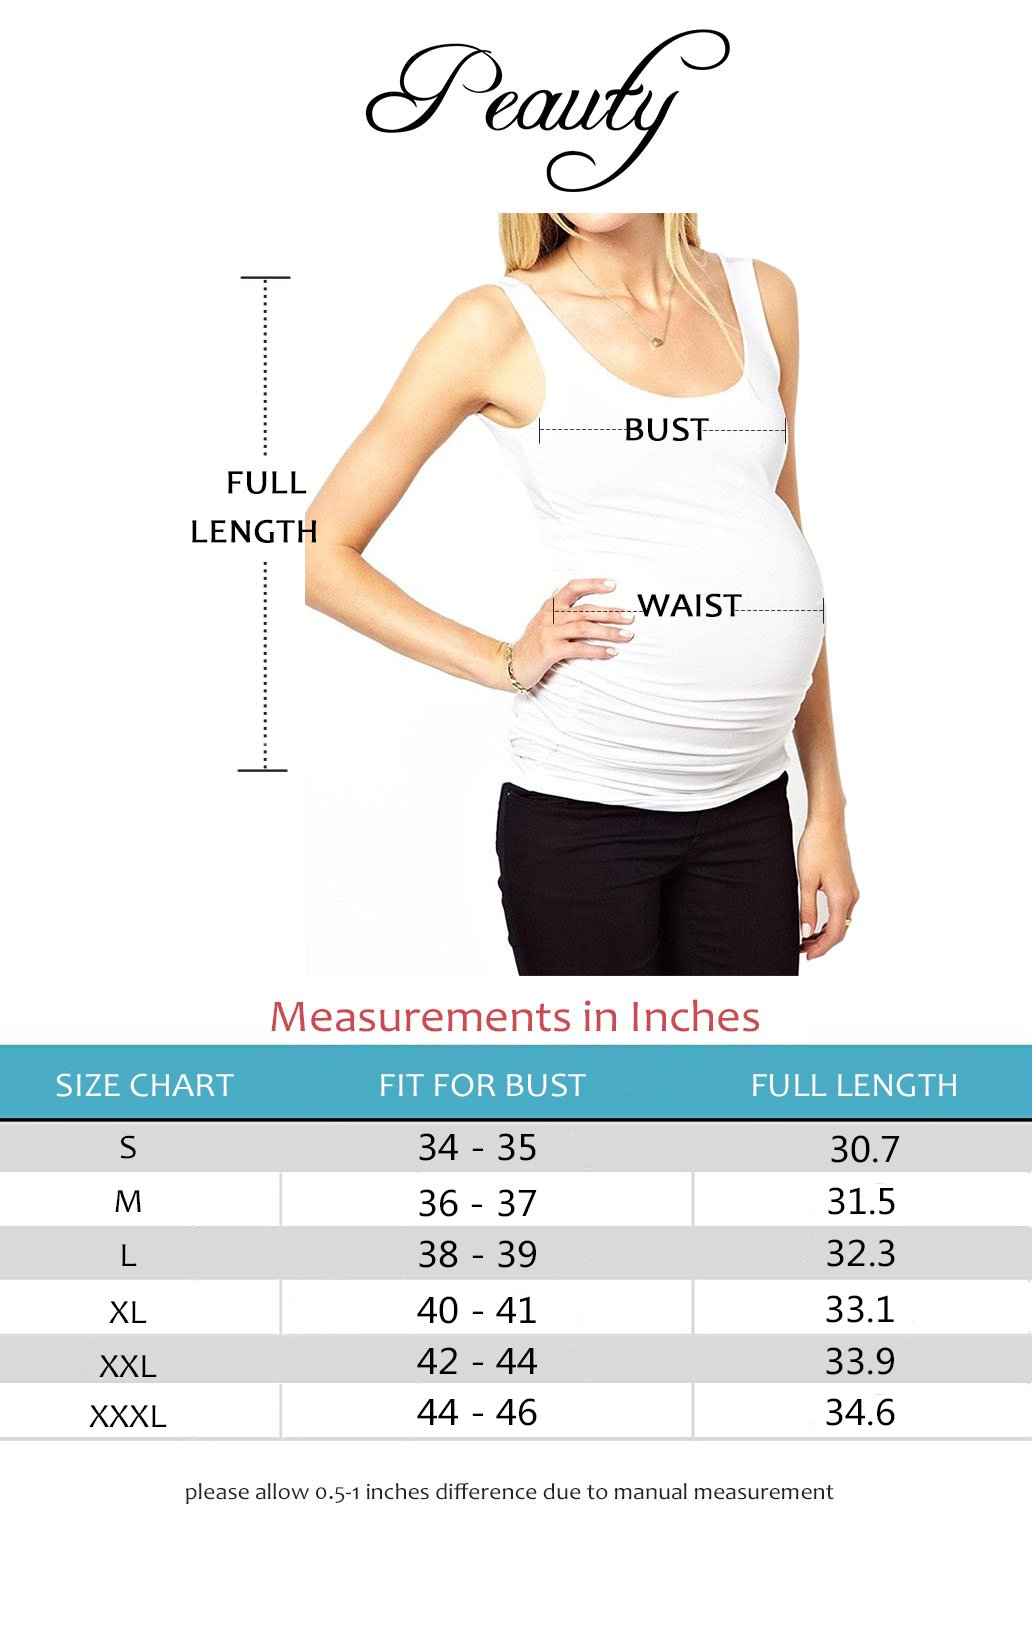 Peauty Maternity Tank Tops Bathing Suit t Shirts Shorts Pregnancy Clothes Women Plus Size 2X 3X (WineRed,XXXL) by Peauty (Image #2)